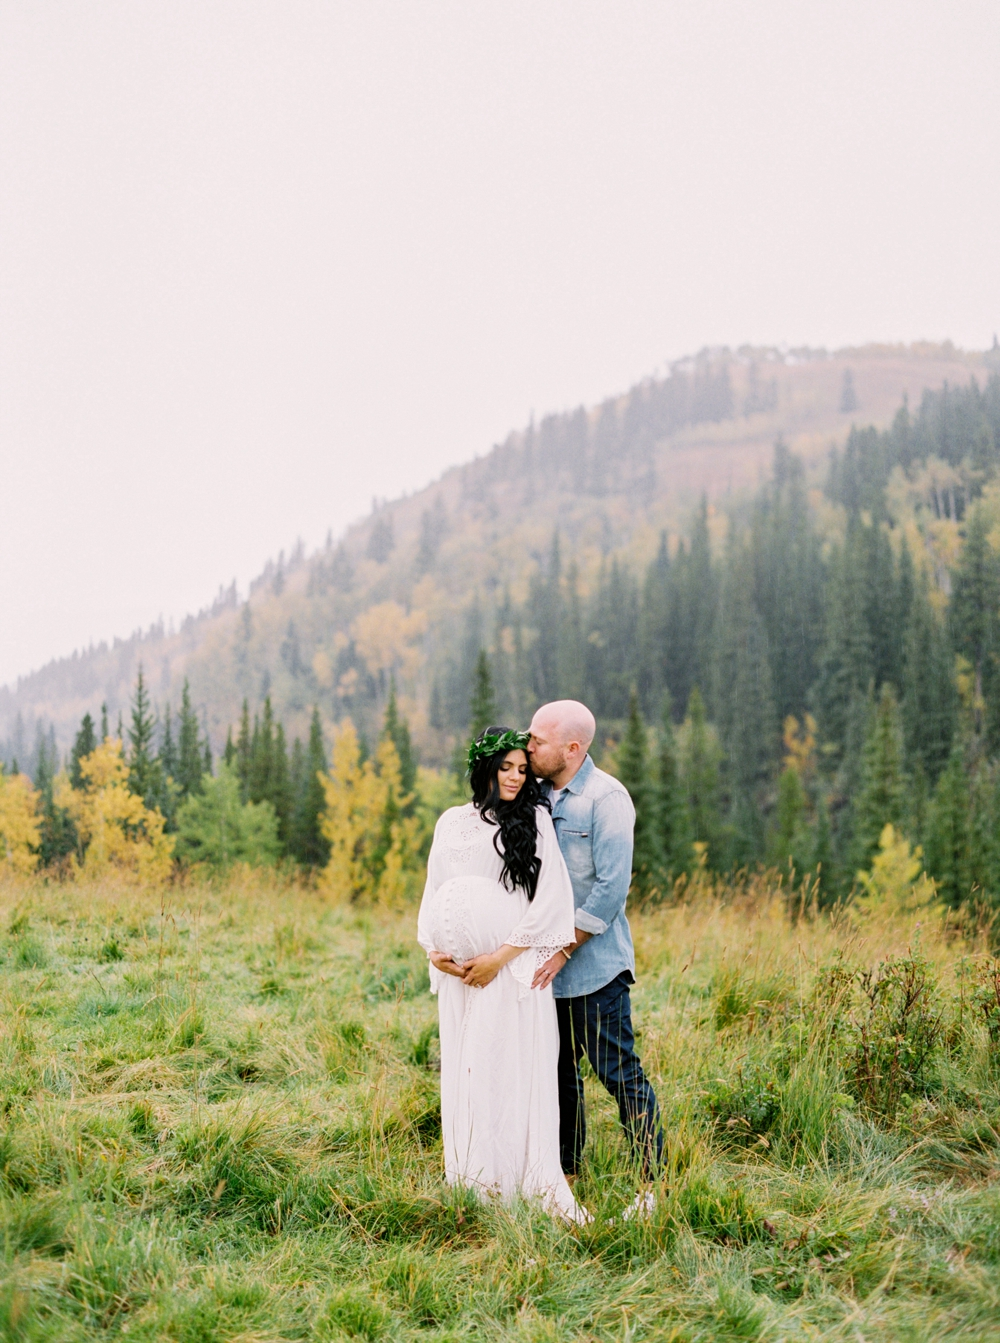 Calgary Maternity Photographers | Pregnancy Photography | Convey The Moment Blogger | Canmore Banff Maternity Session